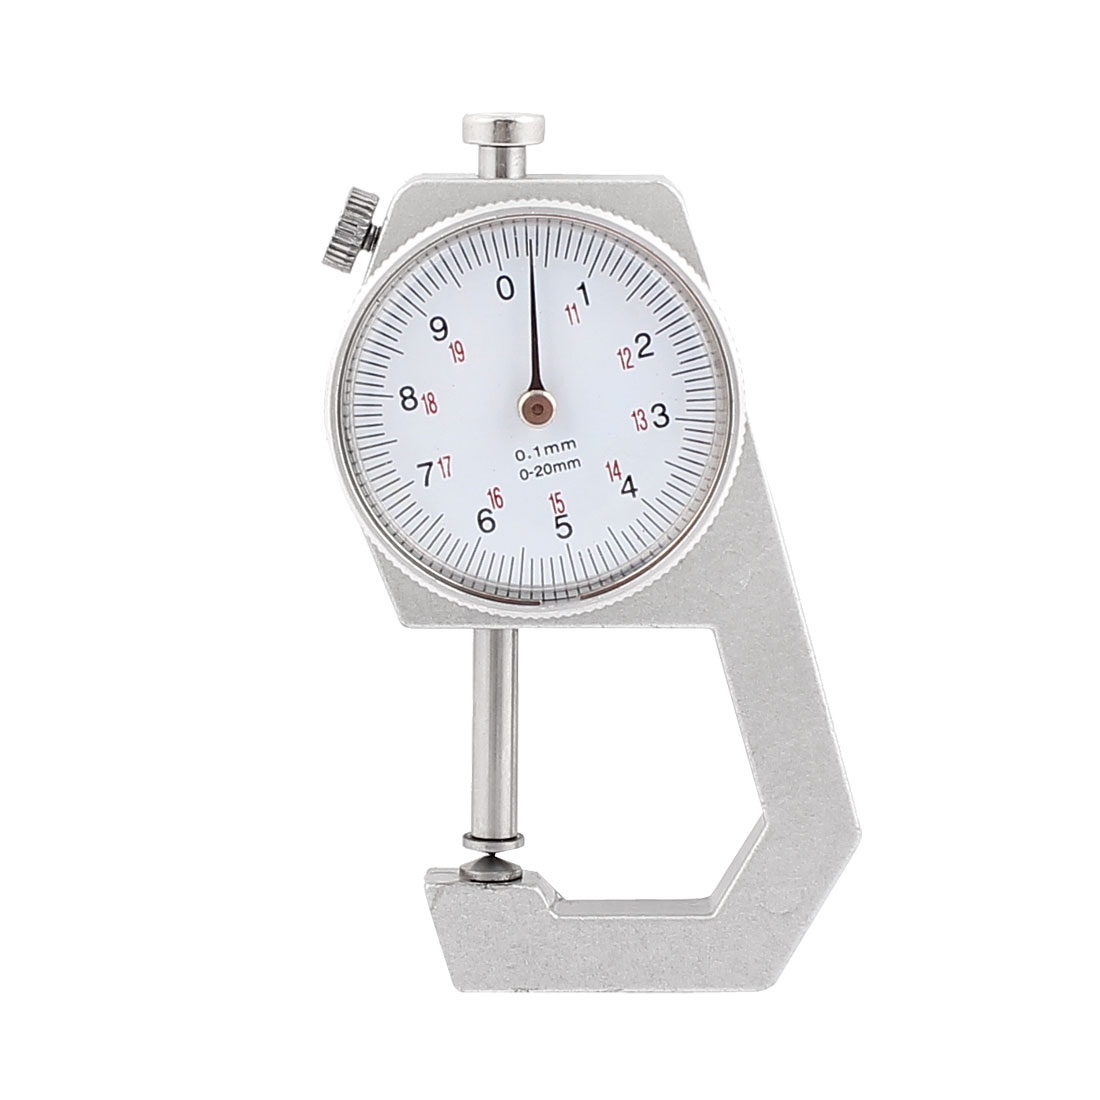 0 to 20mm Measuring Range 0.01mm Grad Round Dial Thickness Gauge C-03